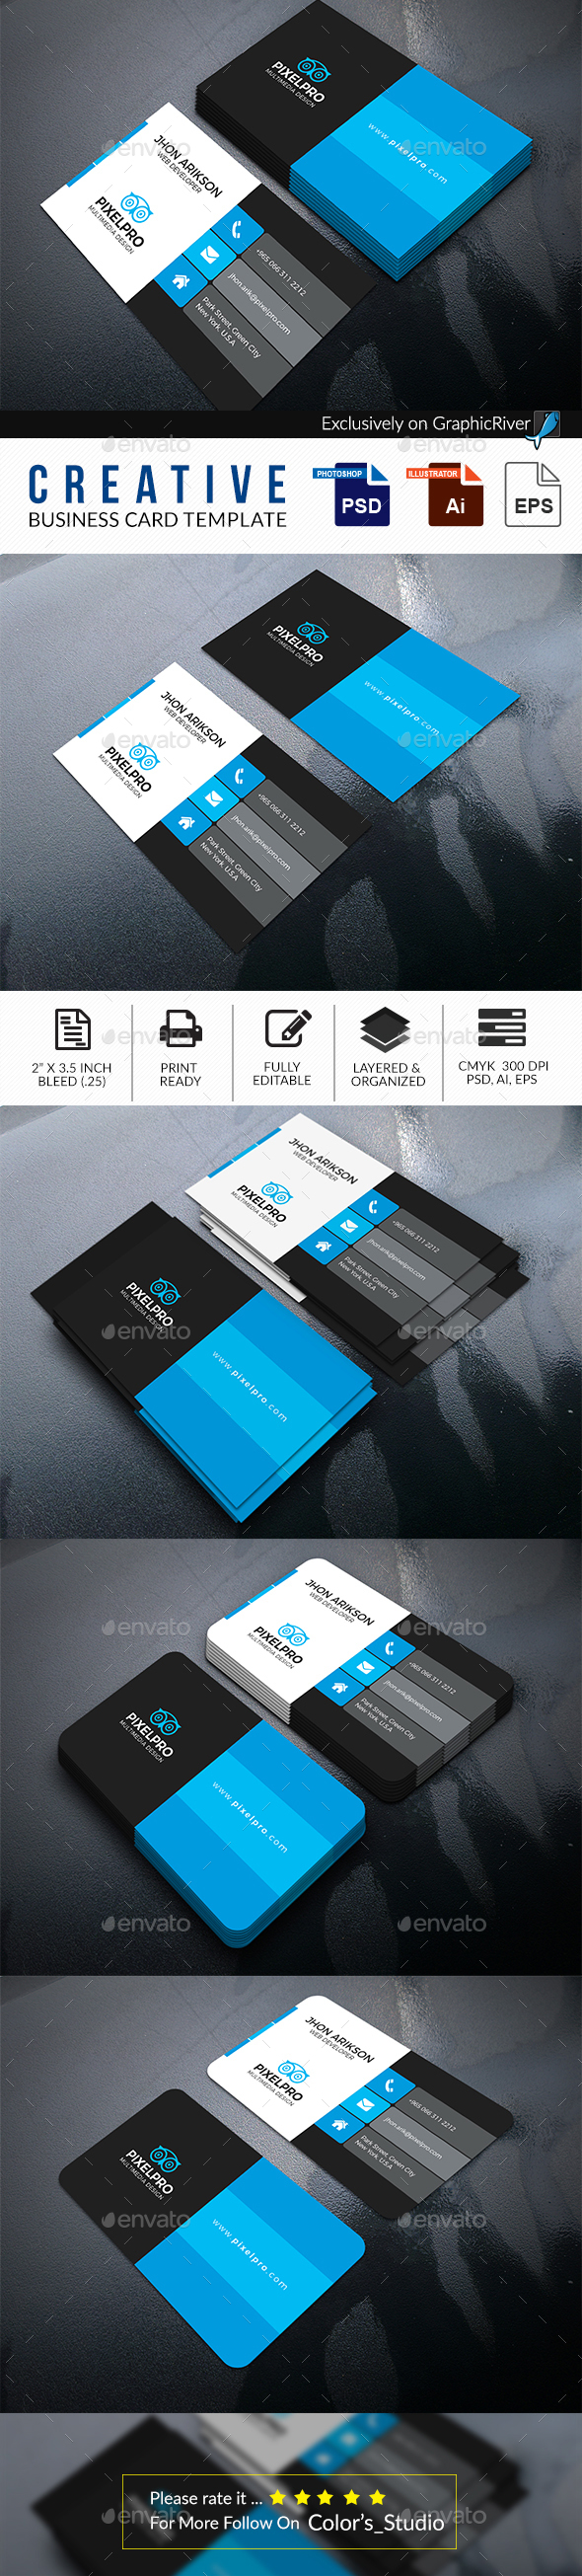 Business Card Print Template - Business Cards Print Templates